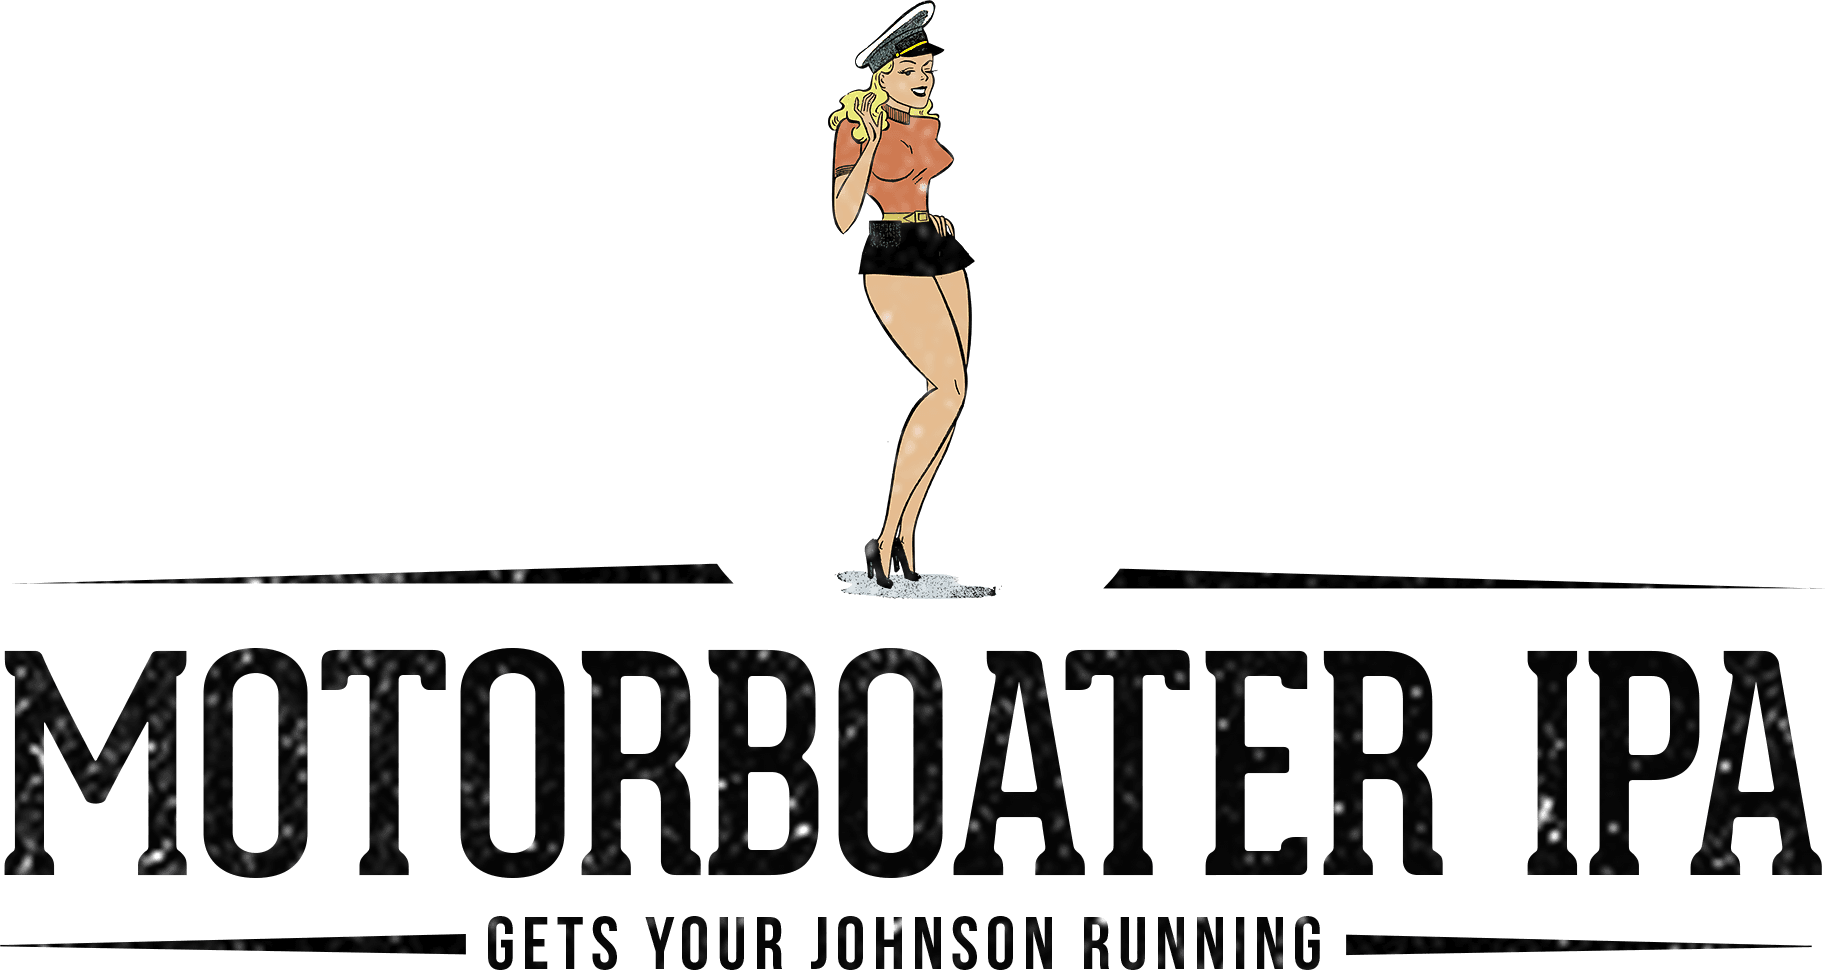 Motorboater IPA